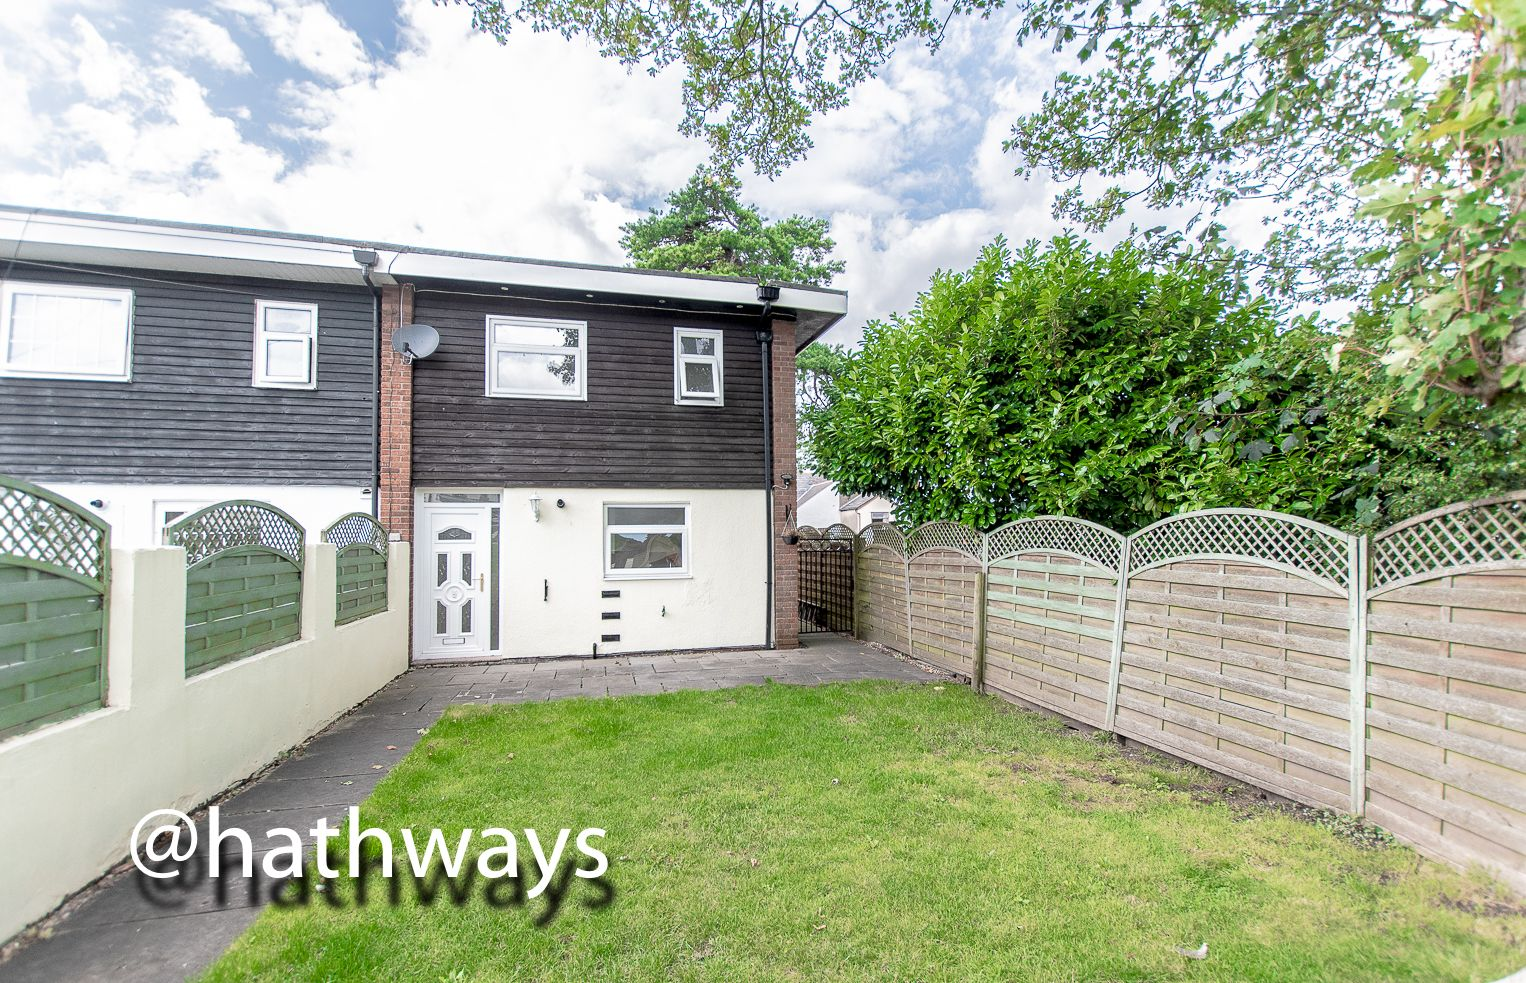 3 bed house for sale in Camelot Court, NP18